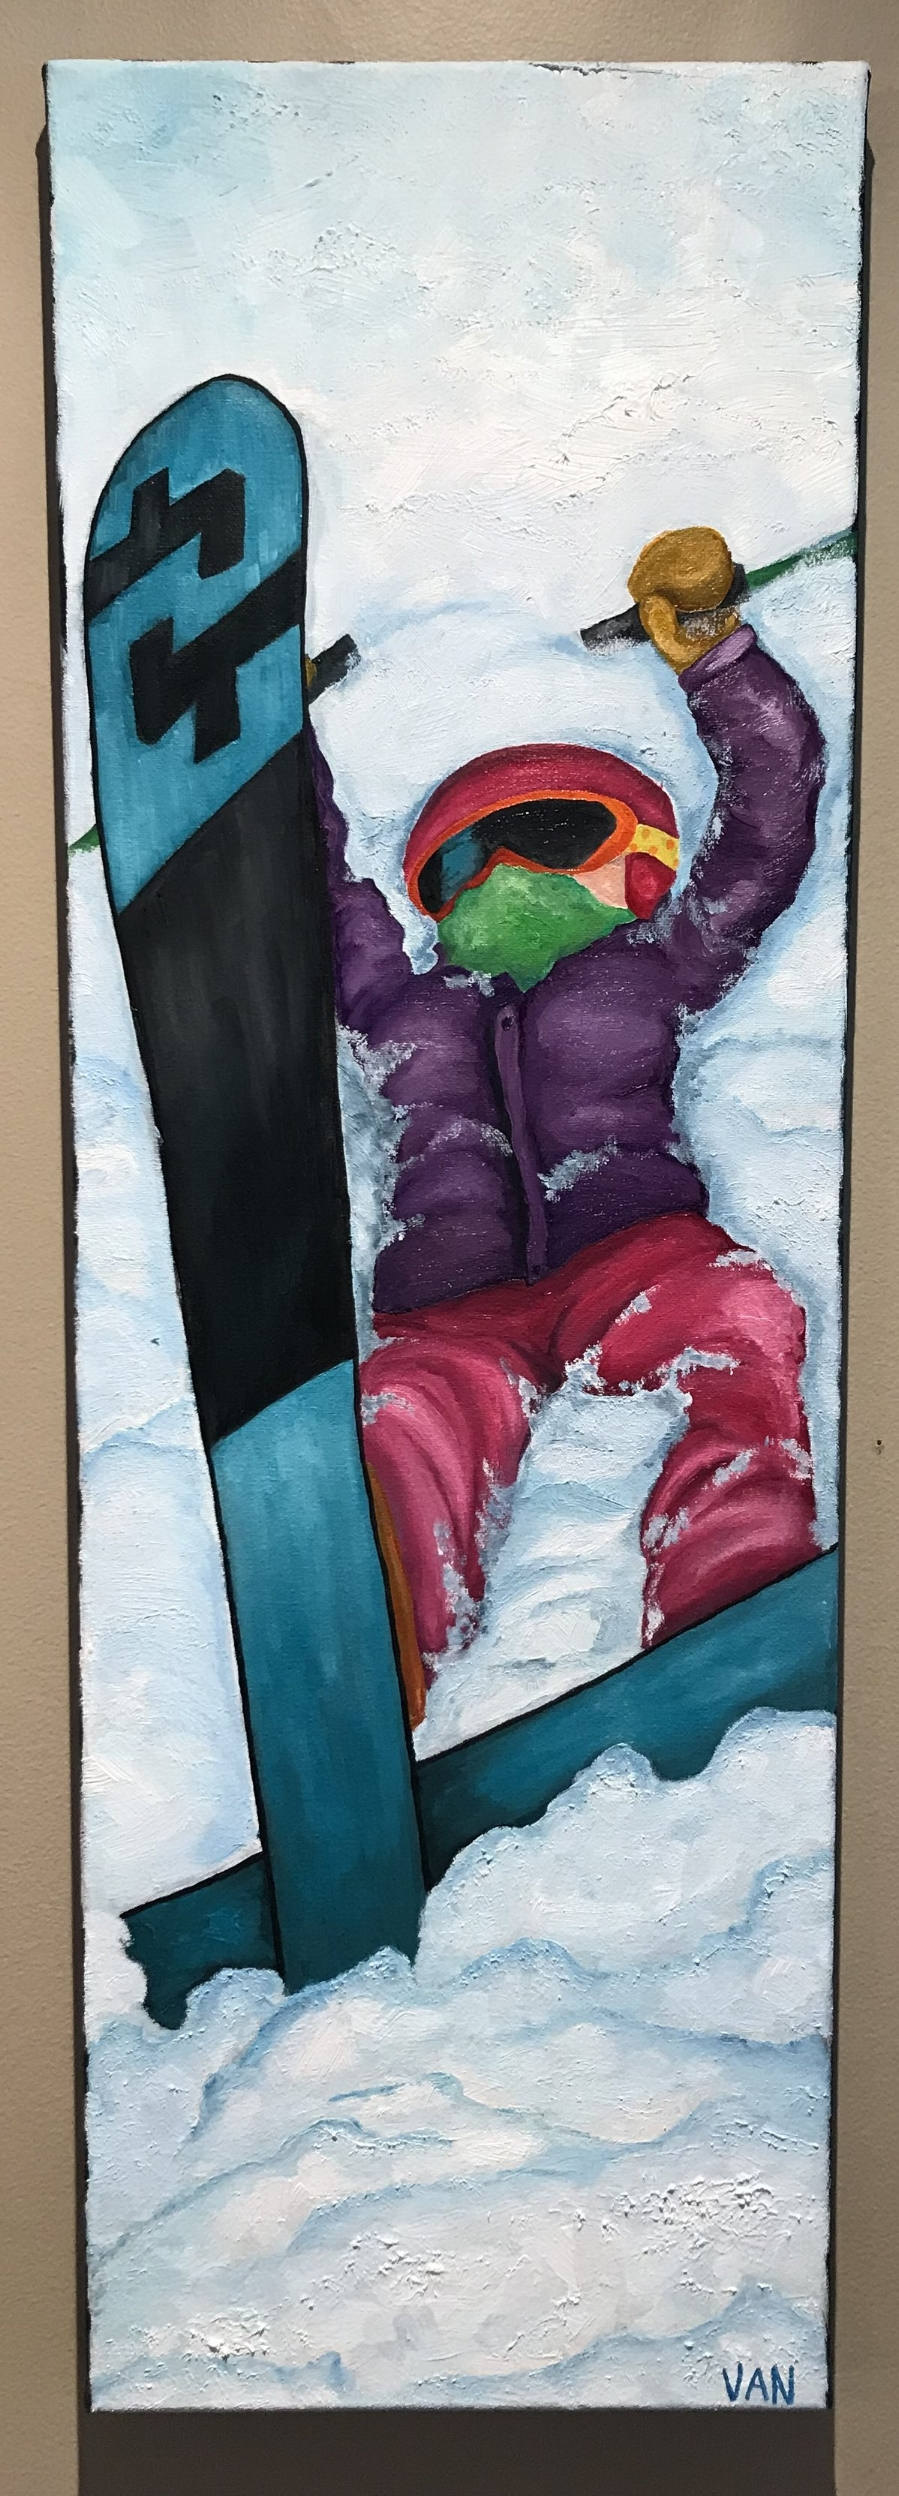 Fallen Little - 10x30, oil on canvasI'm inspired by ski kids and how much they learn in such a short amount of time. I hate to admit it, but my own are now technically stronger skiers than me...when did that happen?! But because they are so motivated to show me up, sometimes they end up fallen and I confess that sometimes it makes me laugh. There are many days that don't necessarily go smoothly...some where we forget gear at home, some where we can't seem to be on time for ski school, some when we're bribing them to ski down the hill when they decide they're done, some when we search for skis in the snow after a binding released, some where poles are dropped off the chairlifts, and some where they fall, and well, they're stuck. This painting is of a fallen little.And to all the folks that keep dragging their kids out there...I applaud you 👏🏻👏🏻👏🏻 job well done!